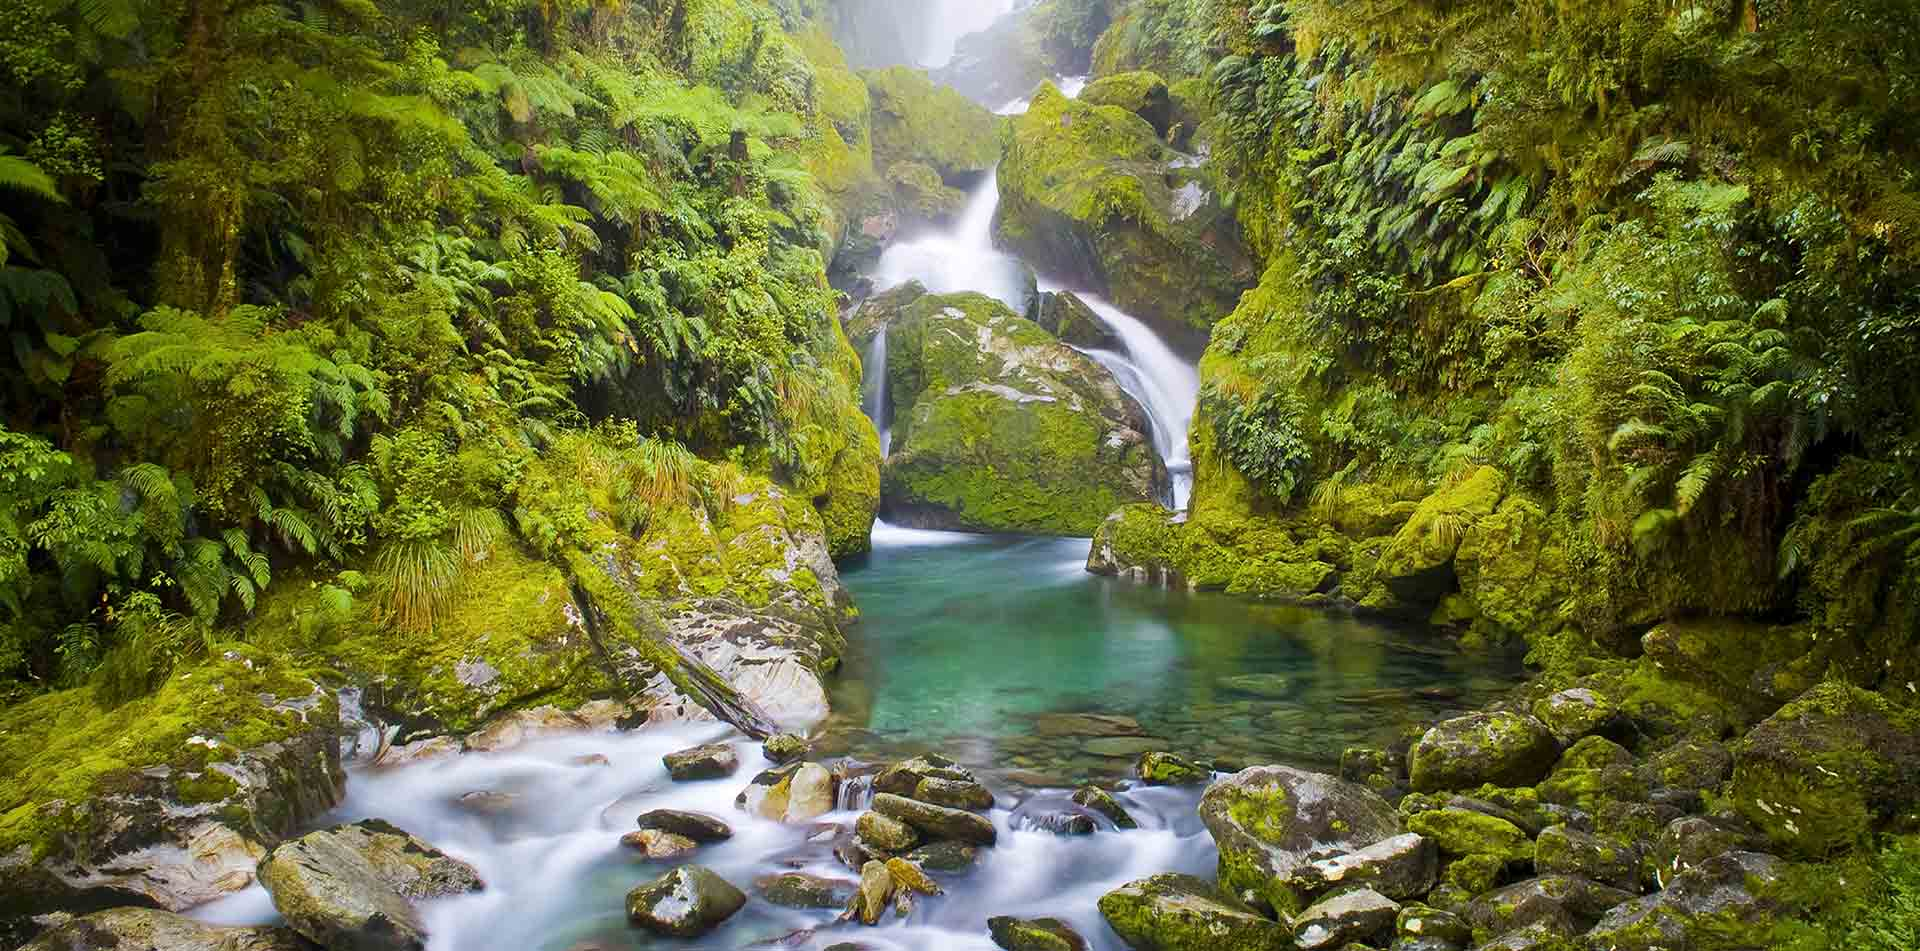 Oceania New Zealand South Island Fiordland National Park Milford Track natural lush waterfall - luxury vacation destinations